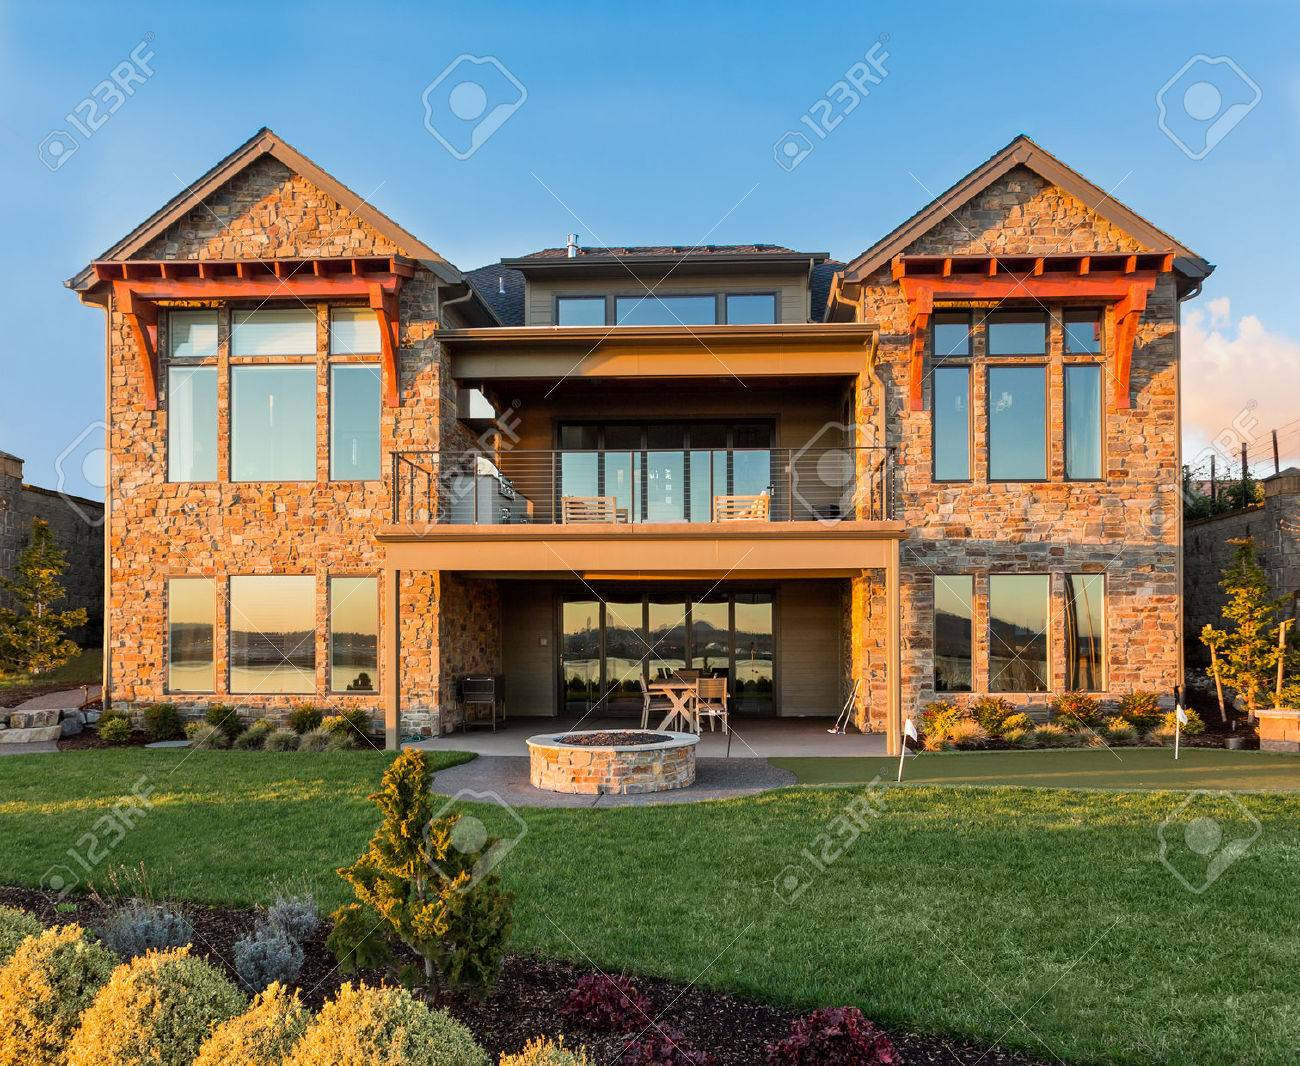 Beautiful Luxury Home Exterior With Balcony And Green Grass On